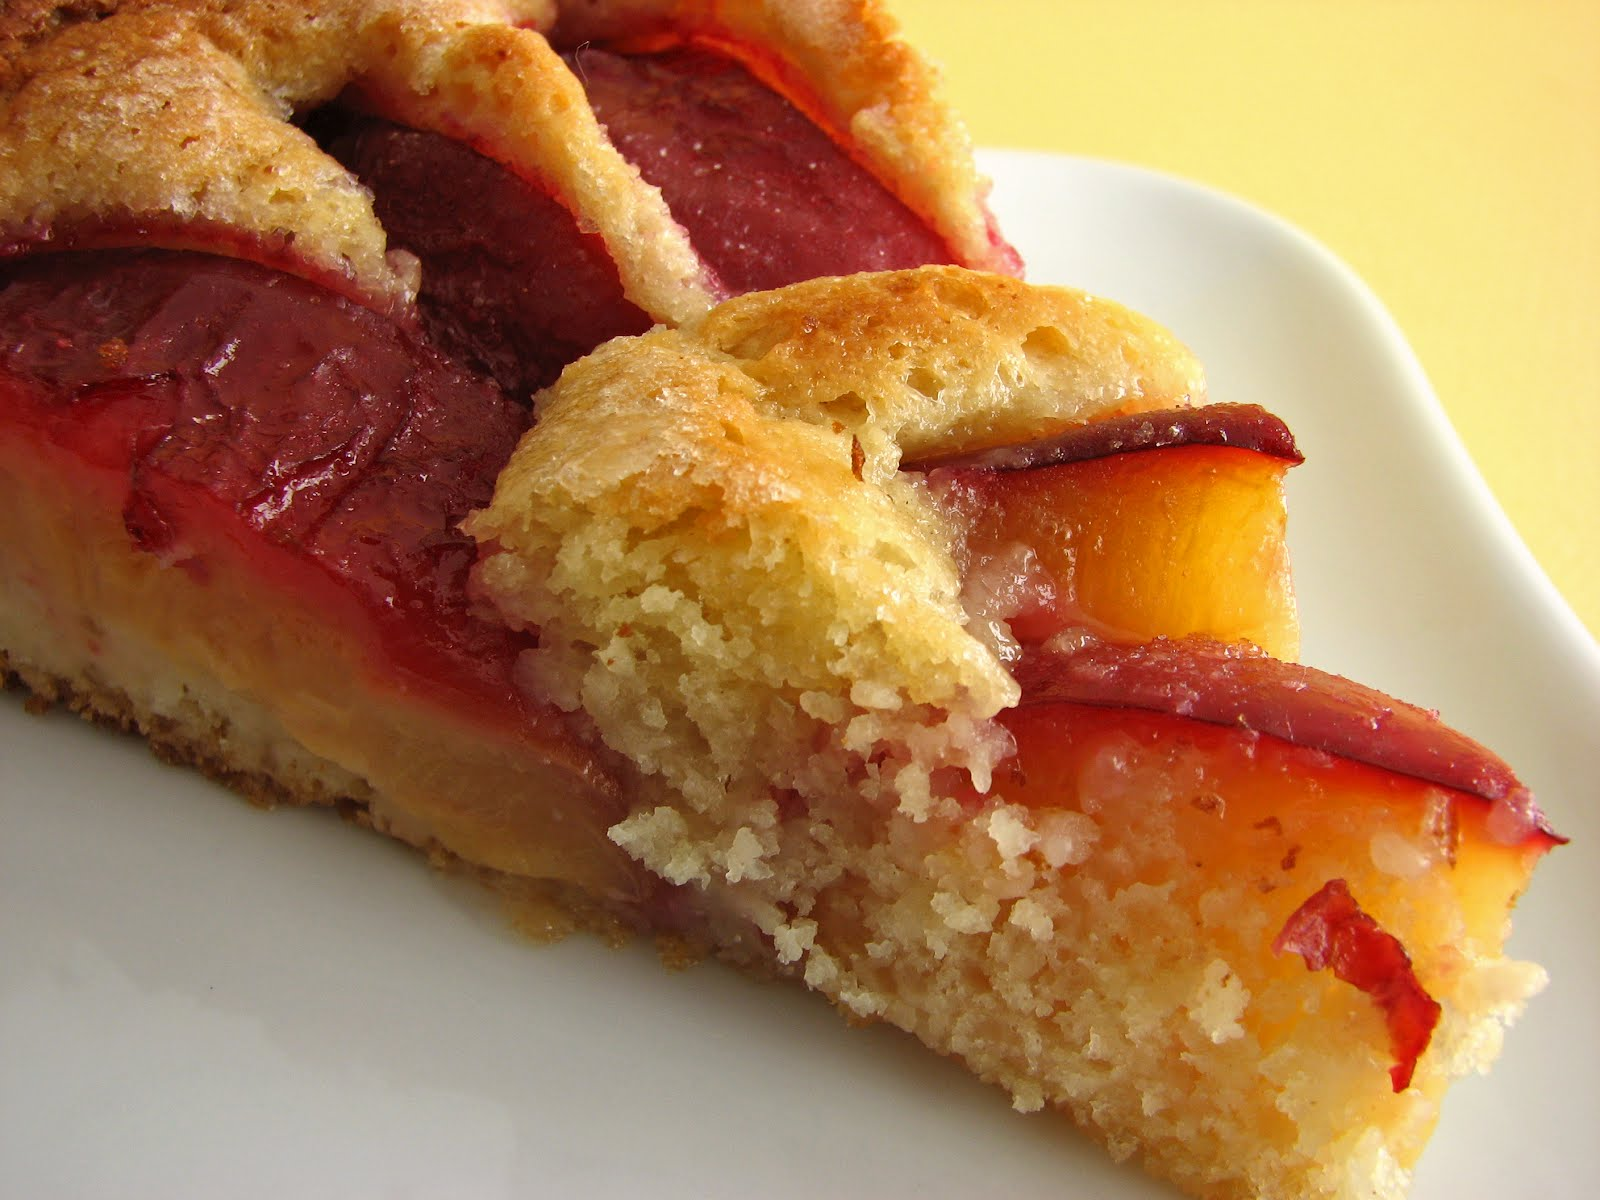 ... peach and plum pie plum and mascarpone pie plum applesauce plum tart